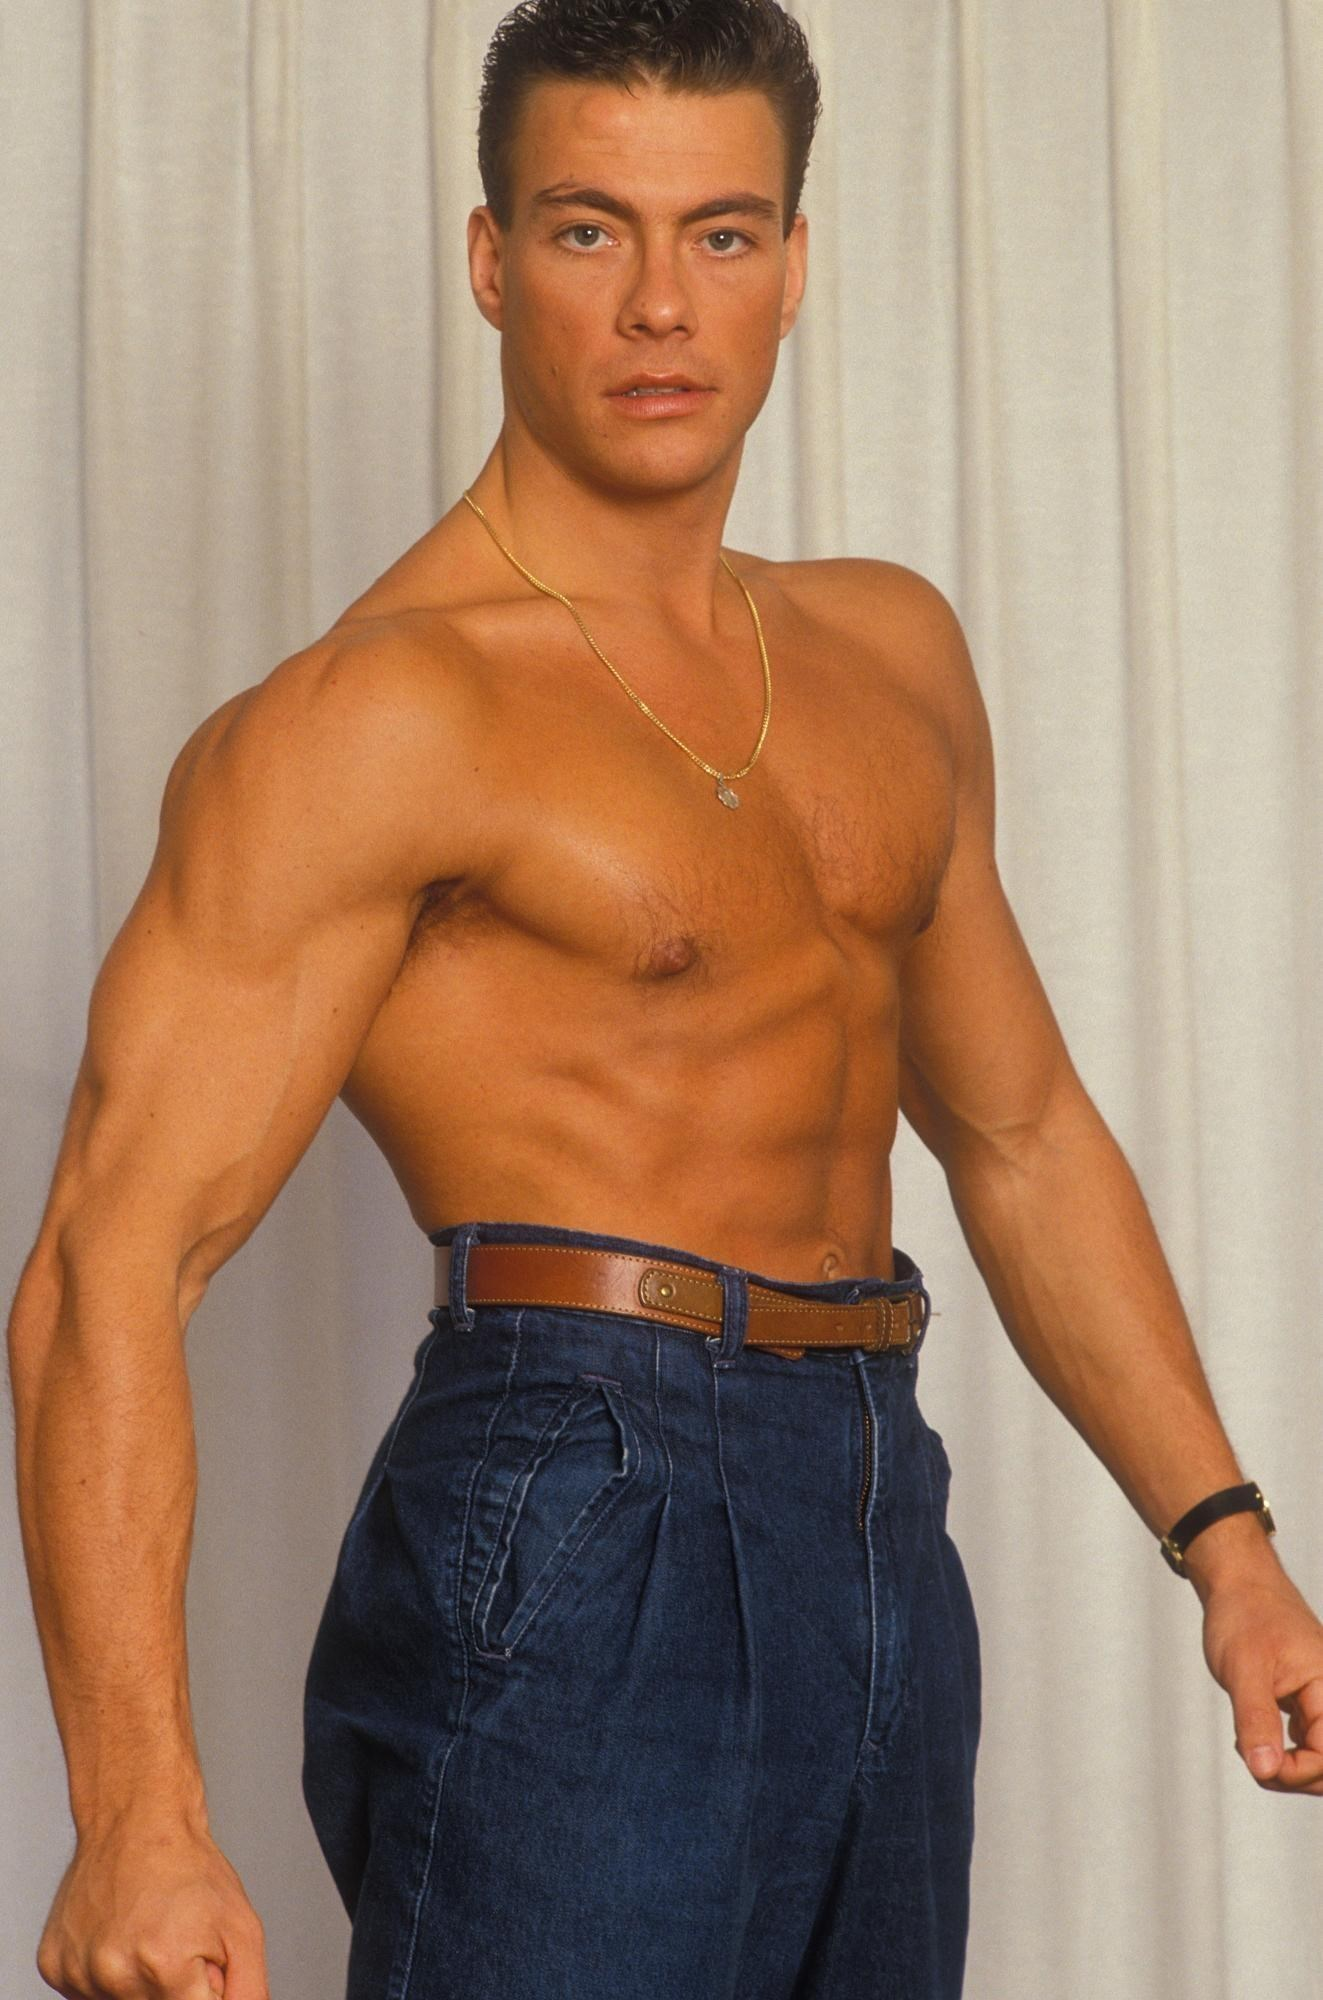 jean claude van damme known people famous people news and biographies old fuse box main old fuse box parts